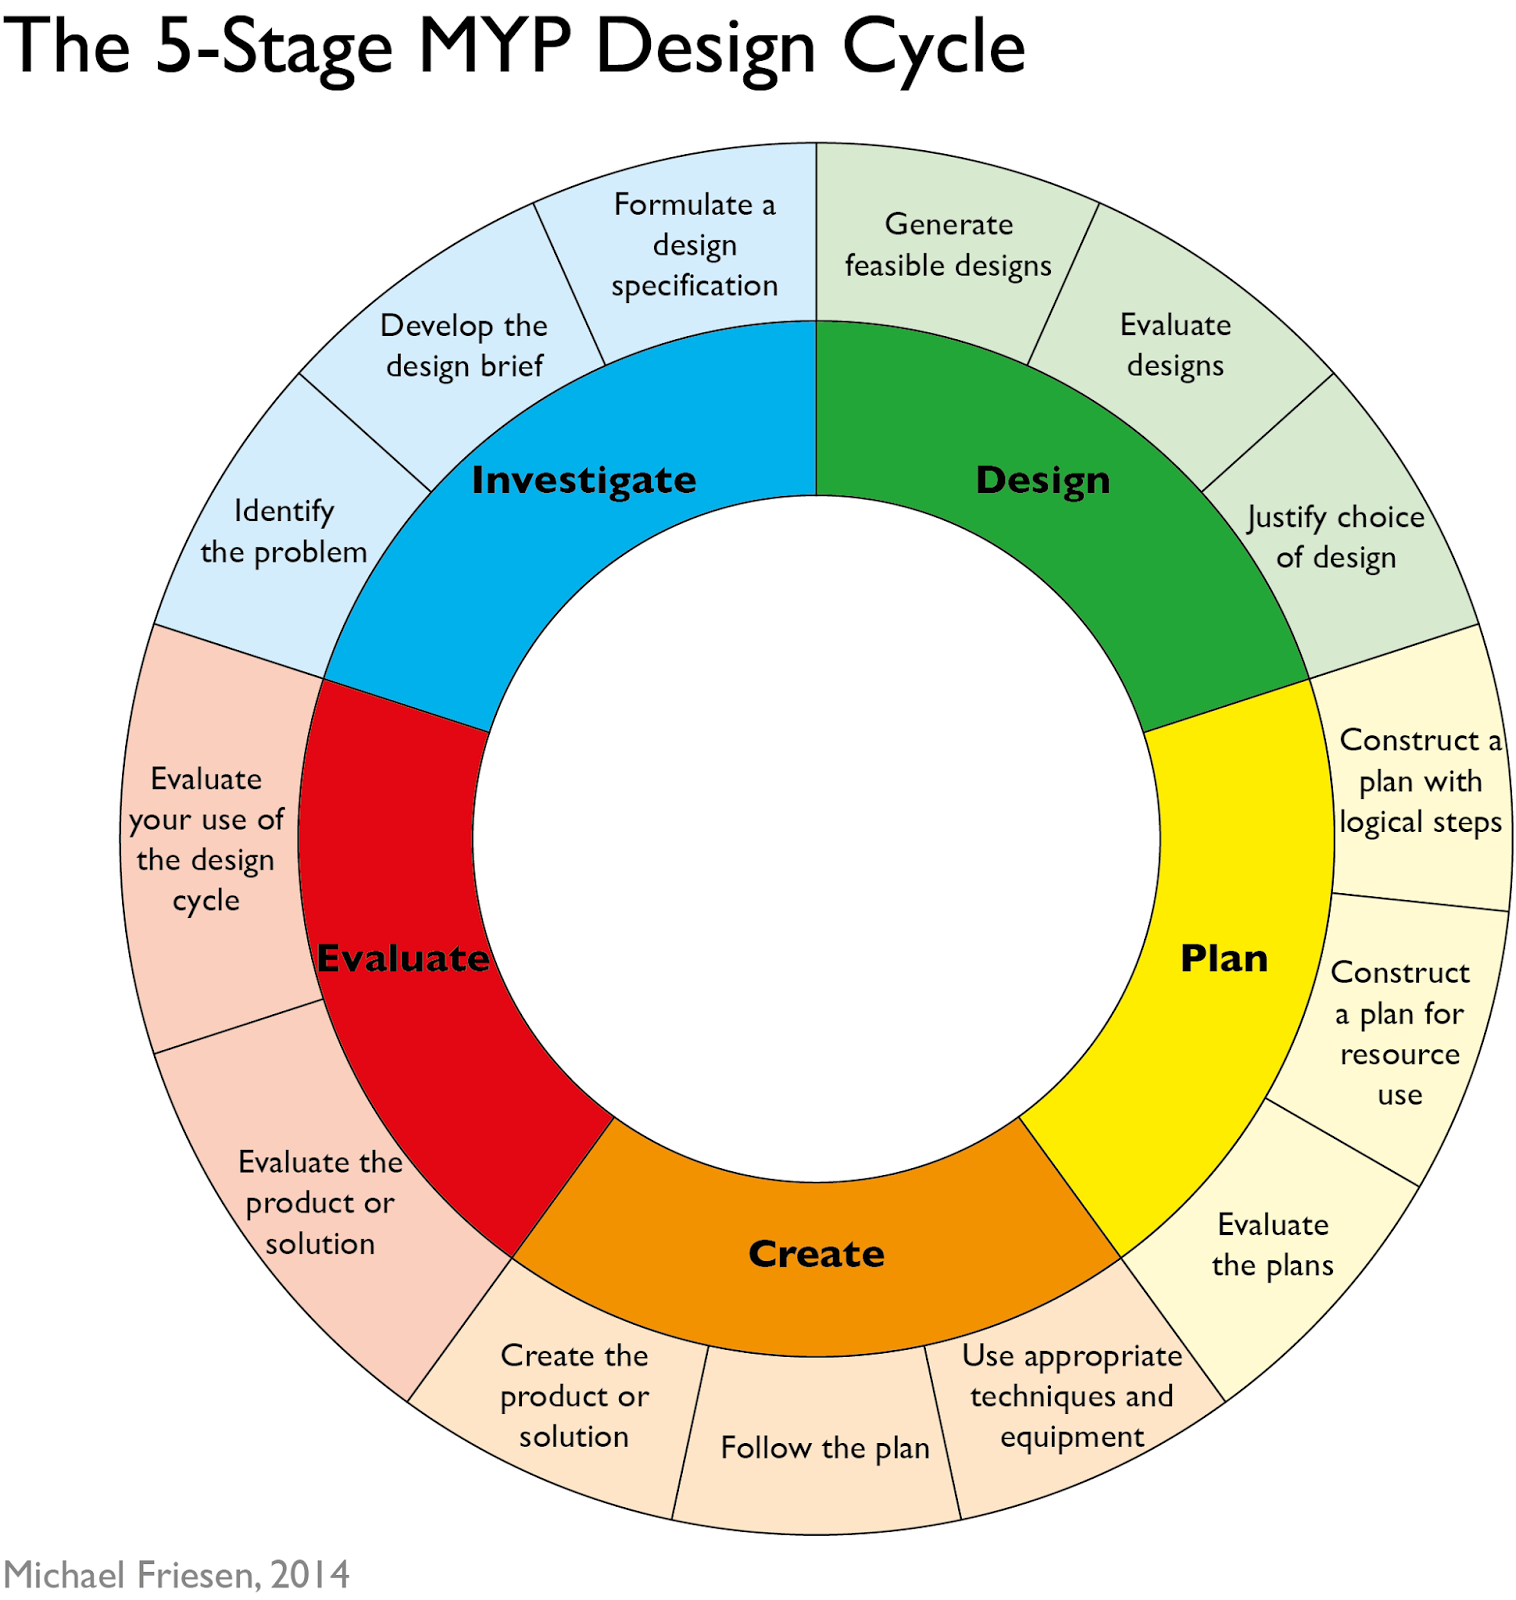 010 Myp Design Cycle 5 Stages Png Essay Example Personal Project Exceptional Guide Full